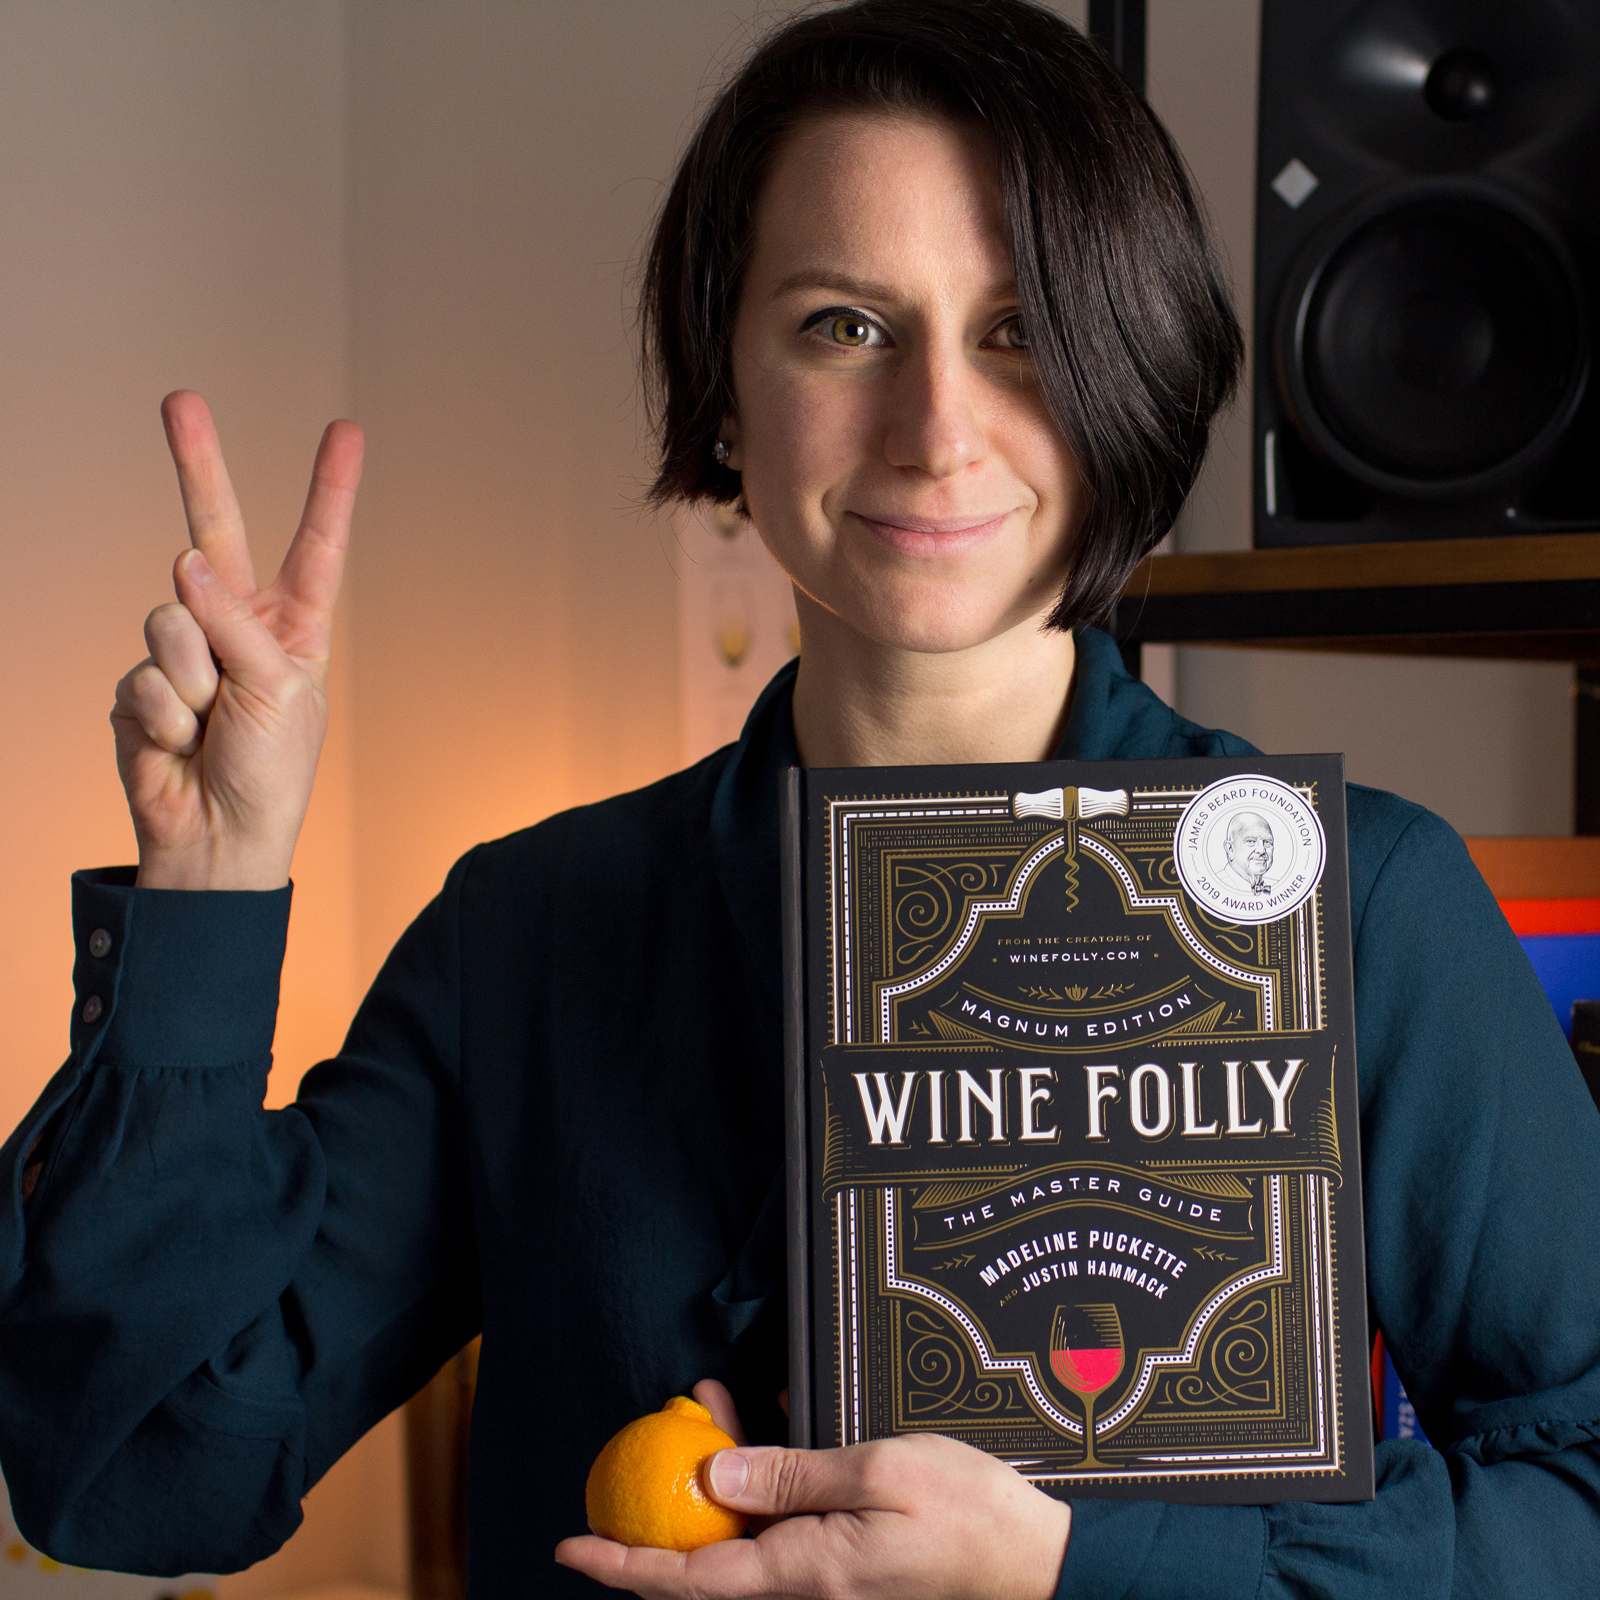 Madeline Puckette - Wine Folly: Magnum Edition Book - Author 2019